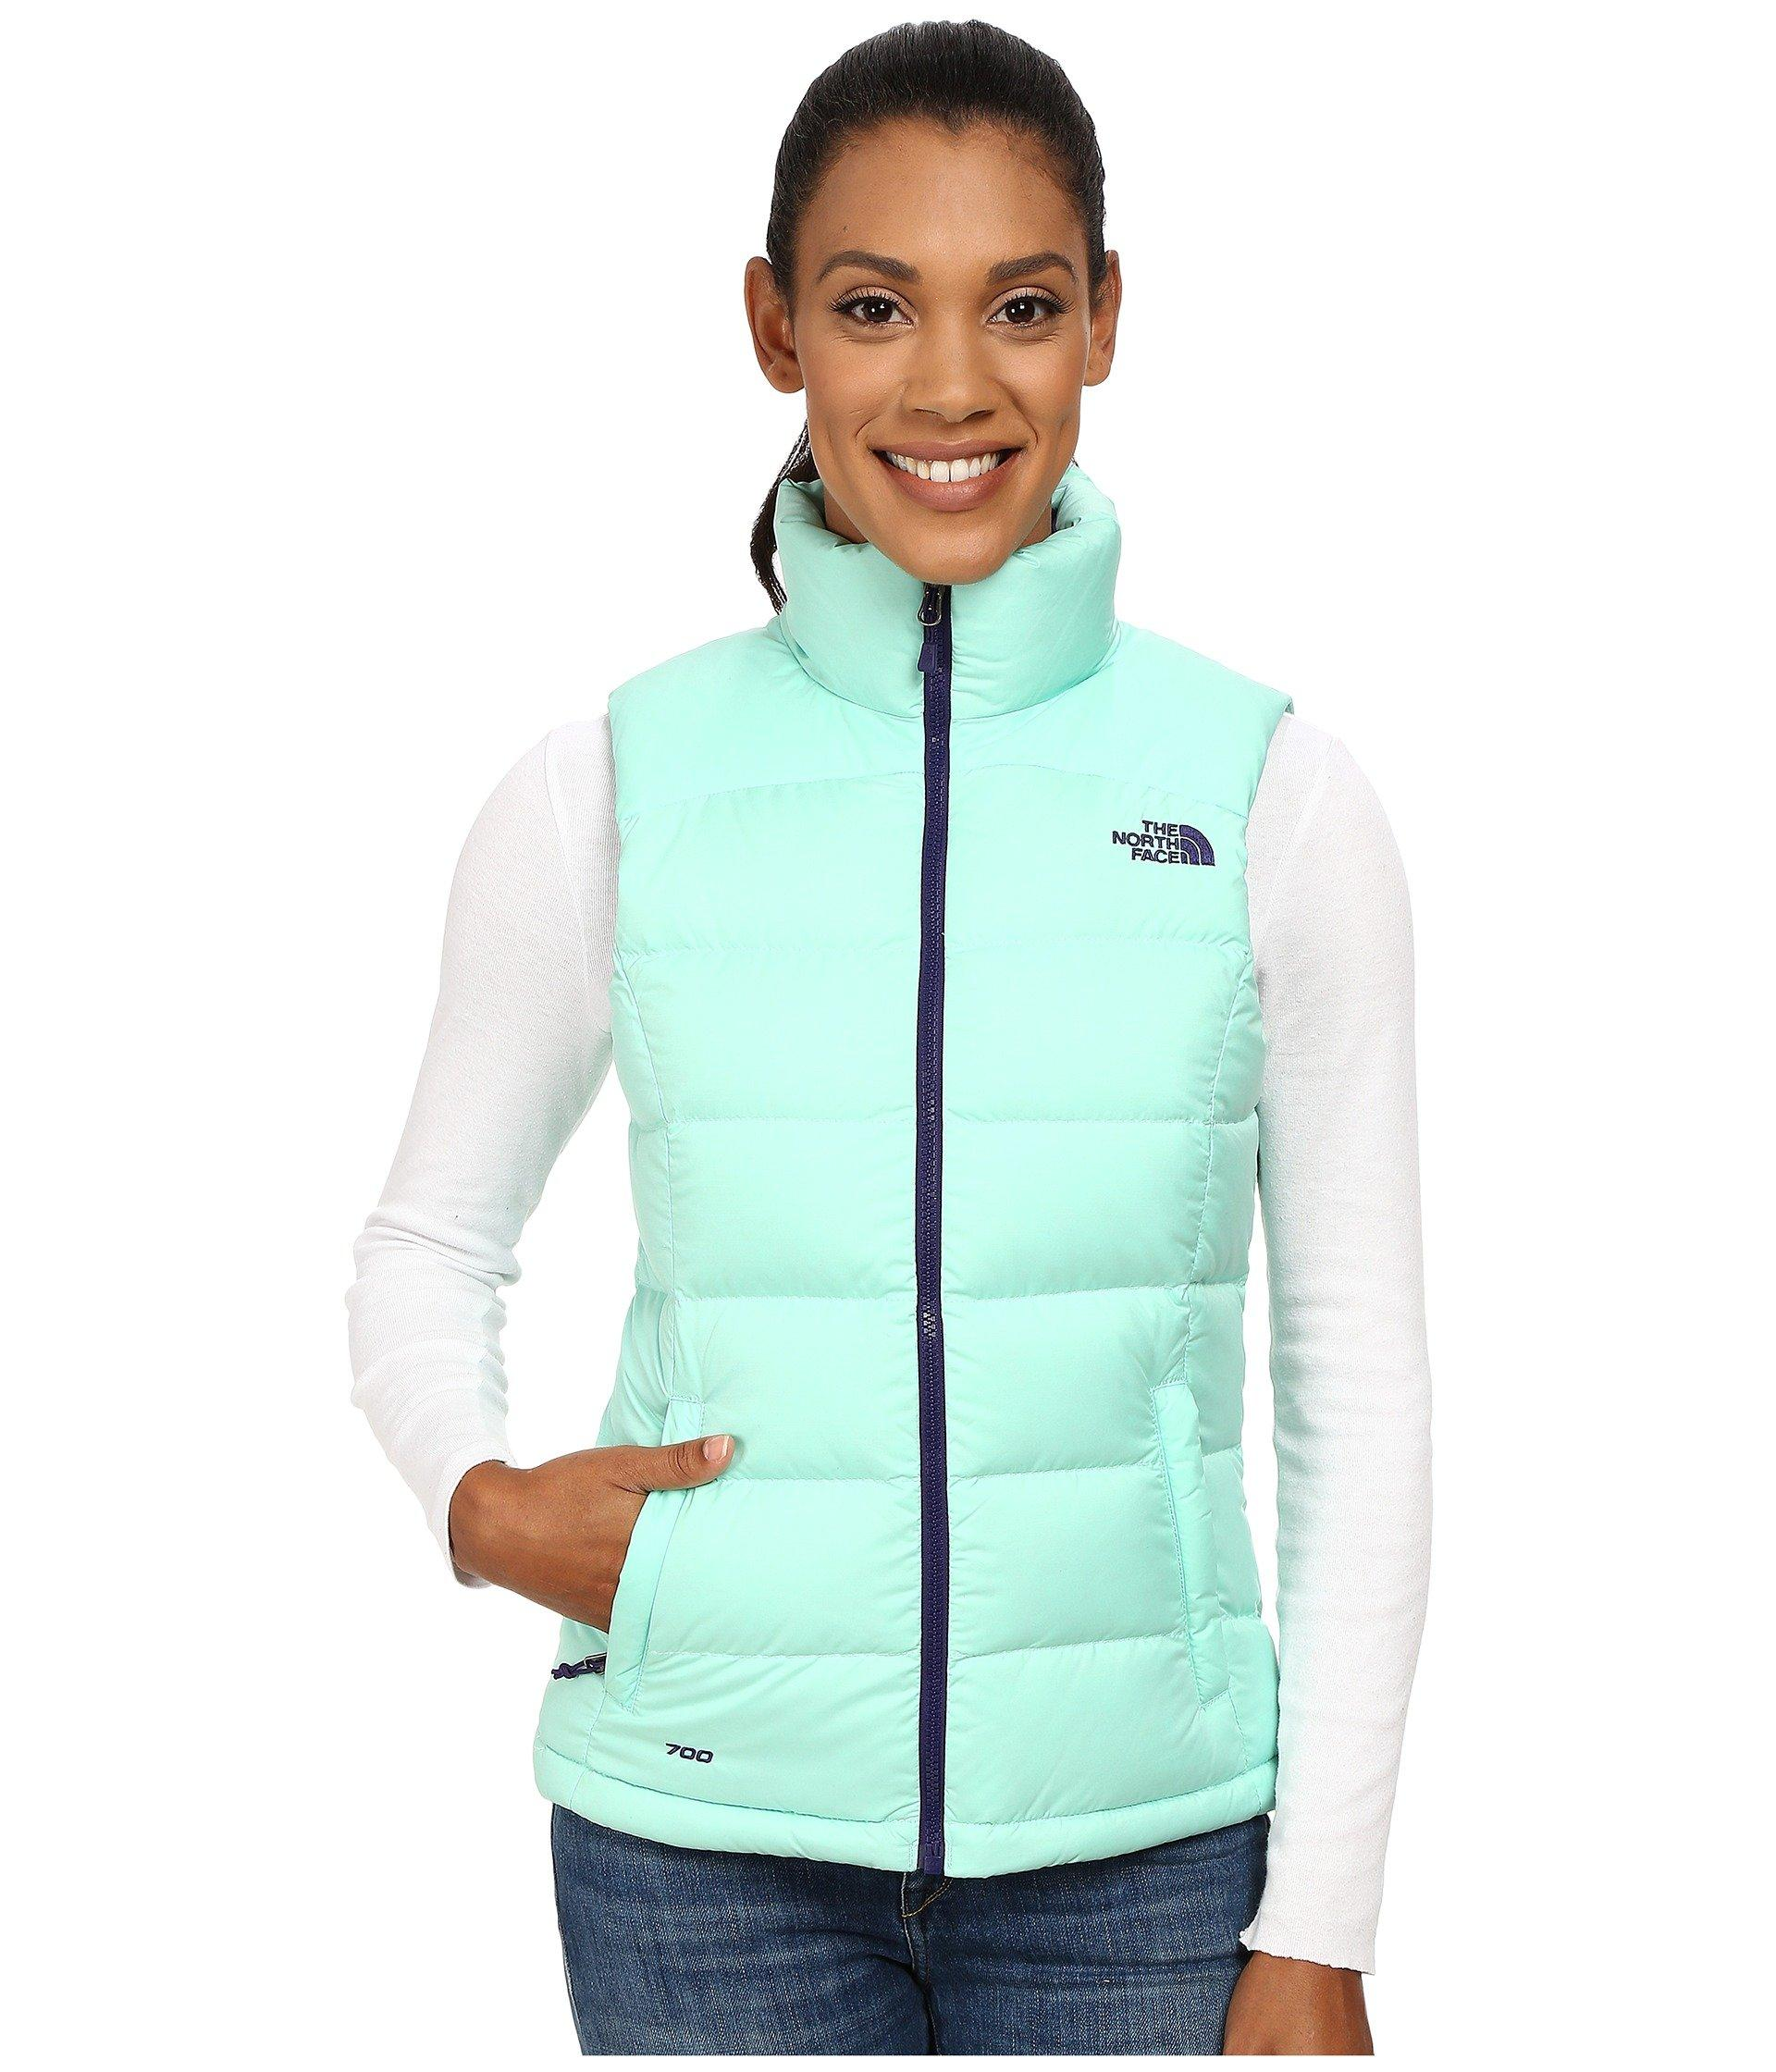 cf2b5091c36a The North Face Nuptse 2 Vest In Surf Green (Prior Season)